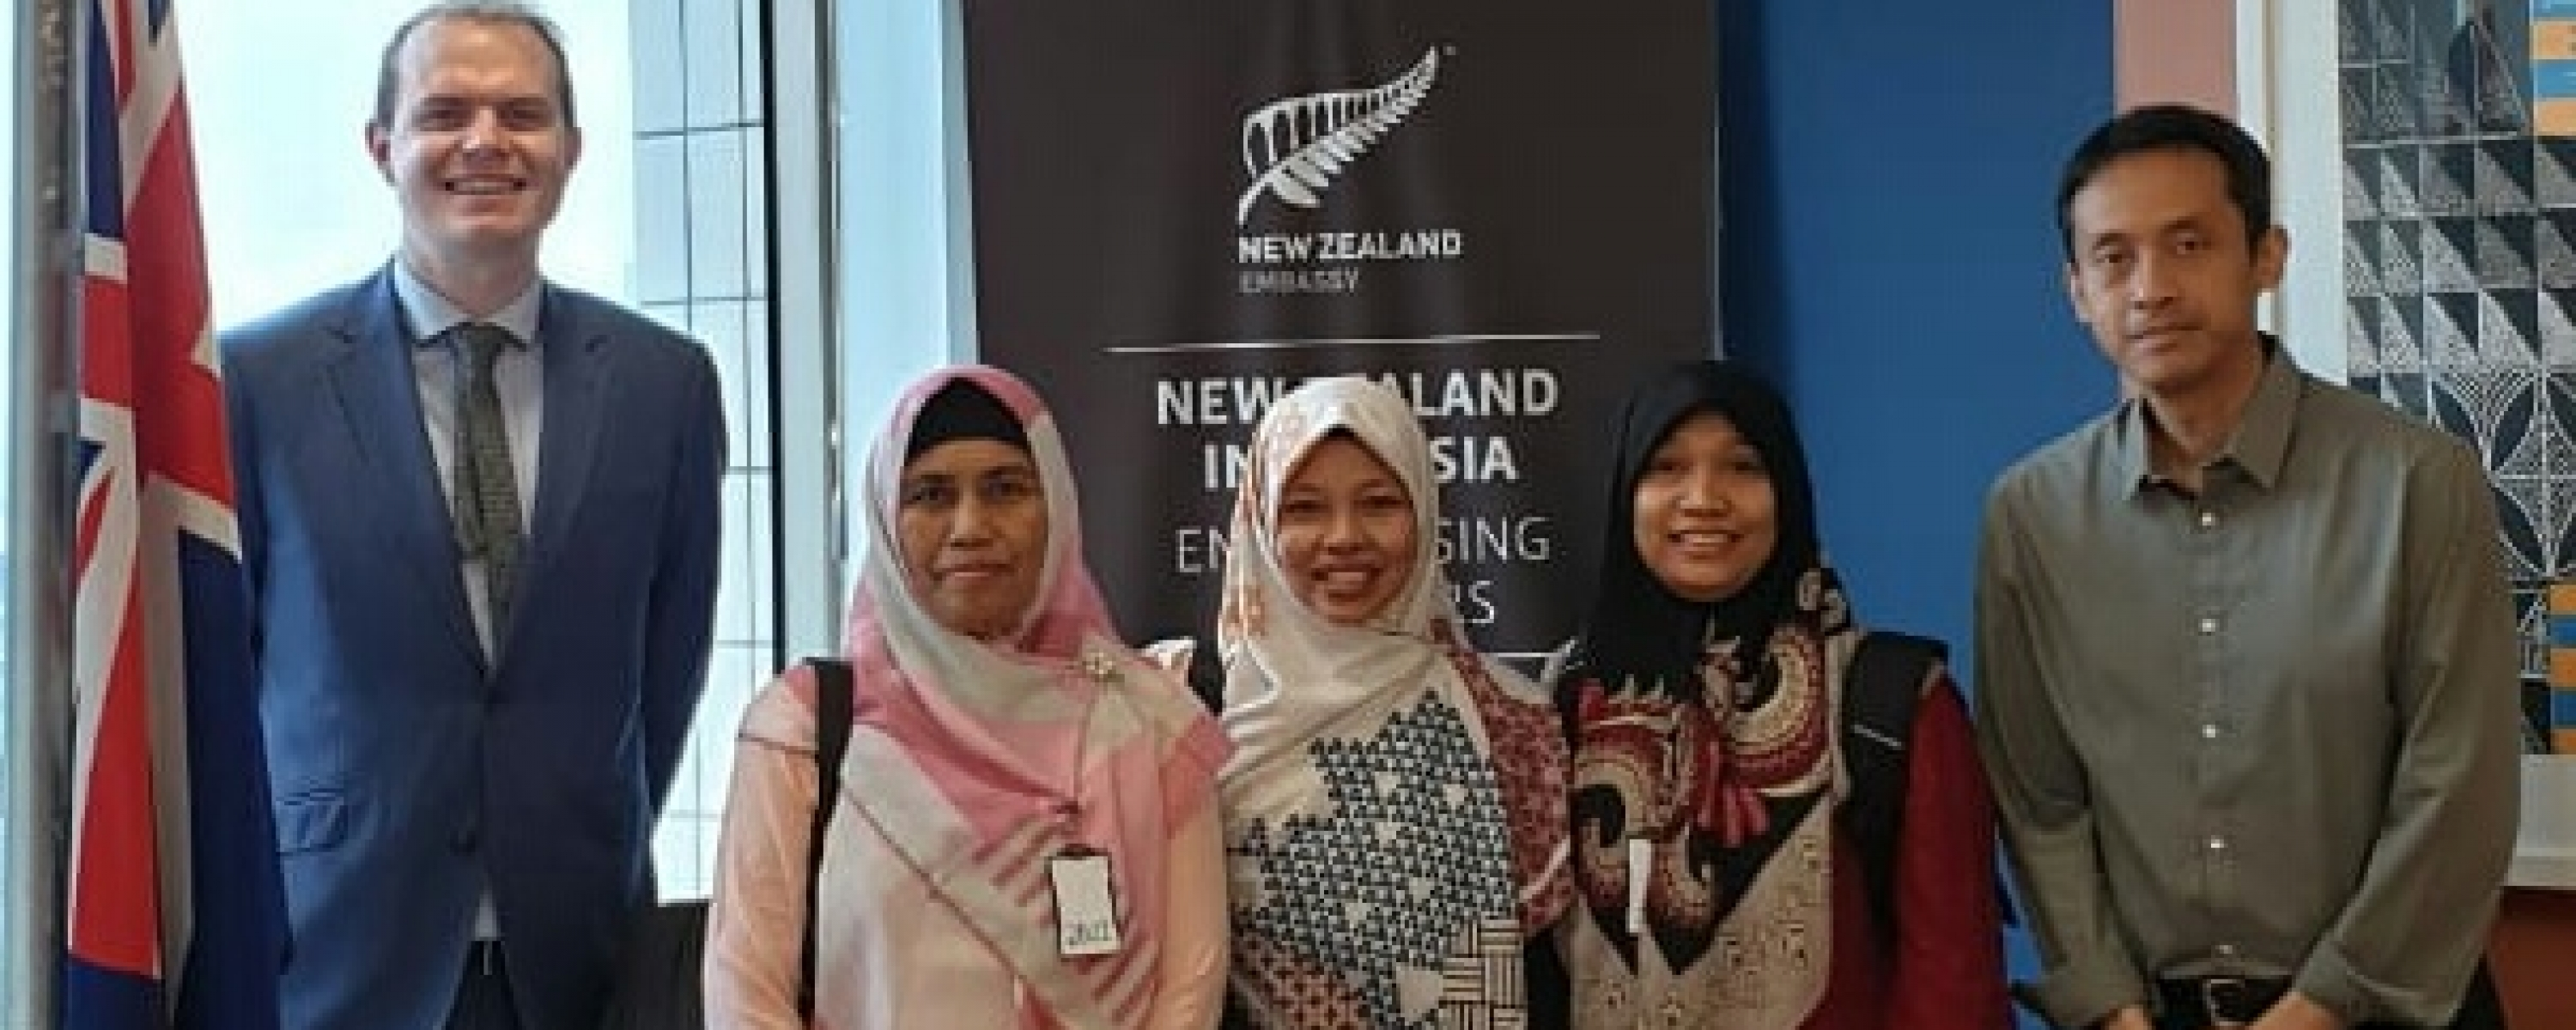 kedutaan news zealand